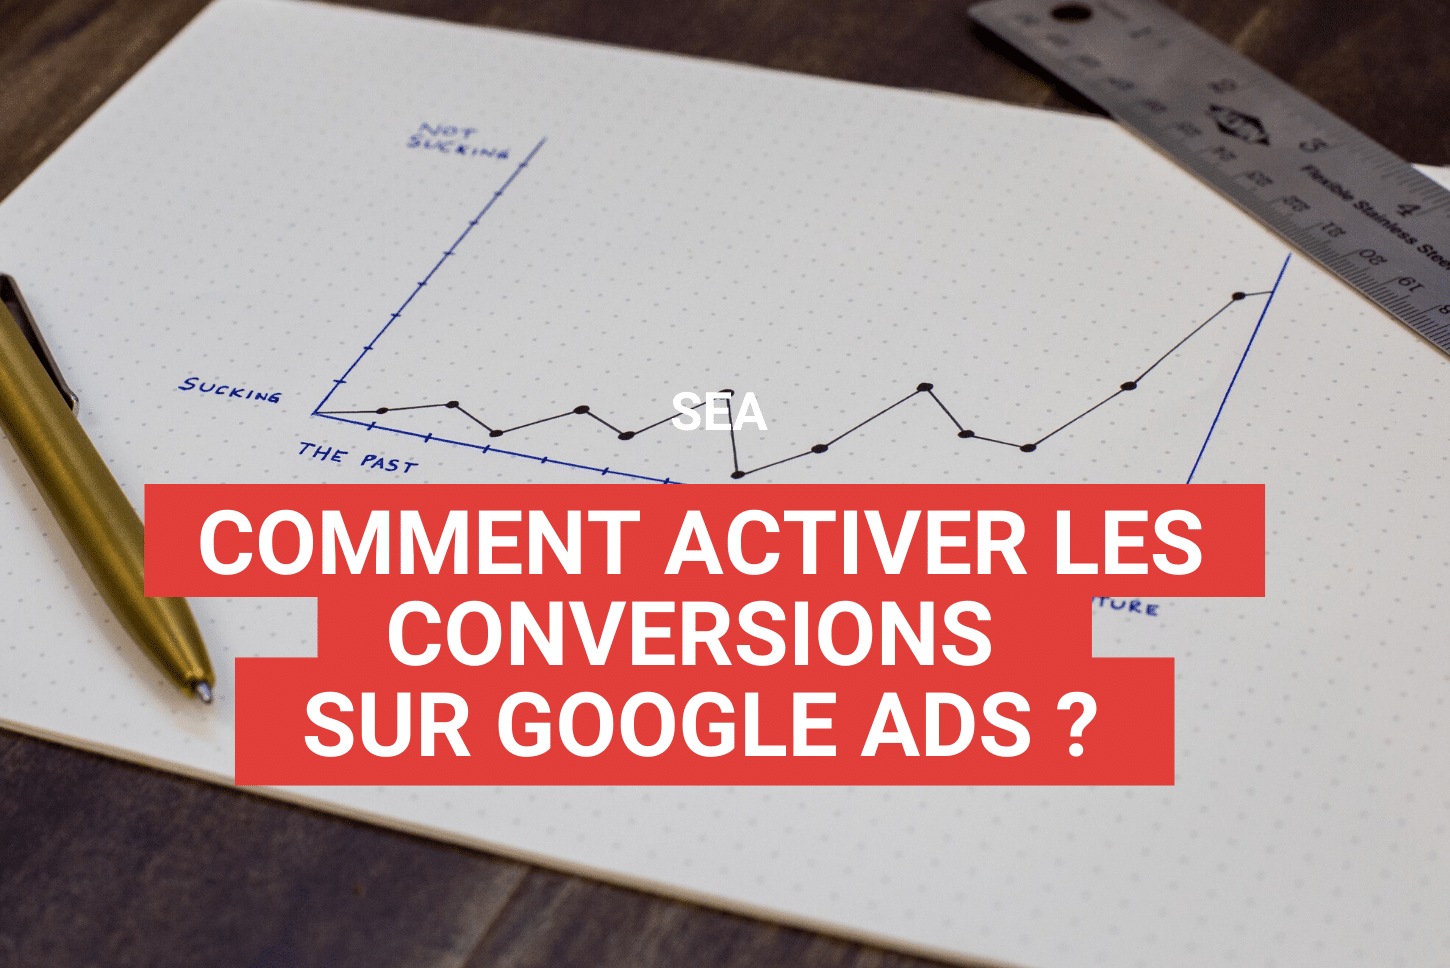 How to enable conversions on Google Ads?